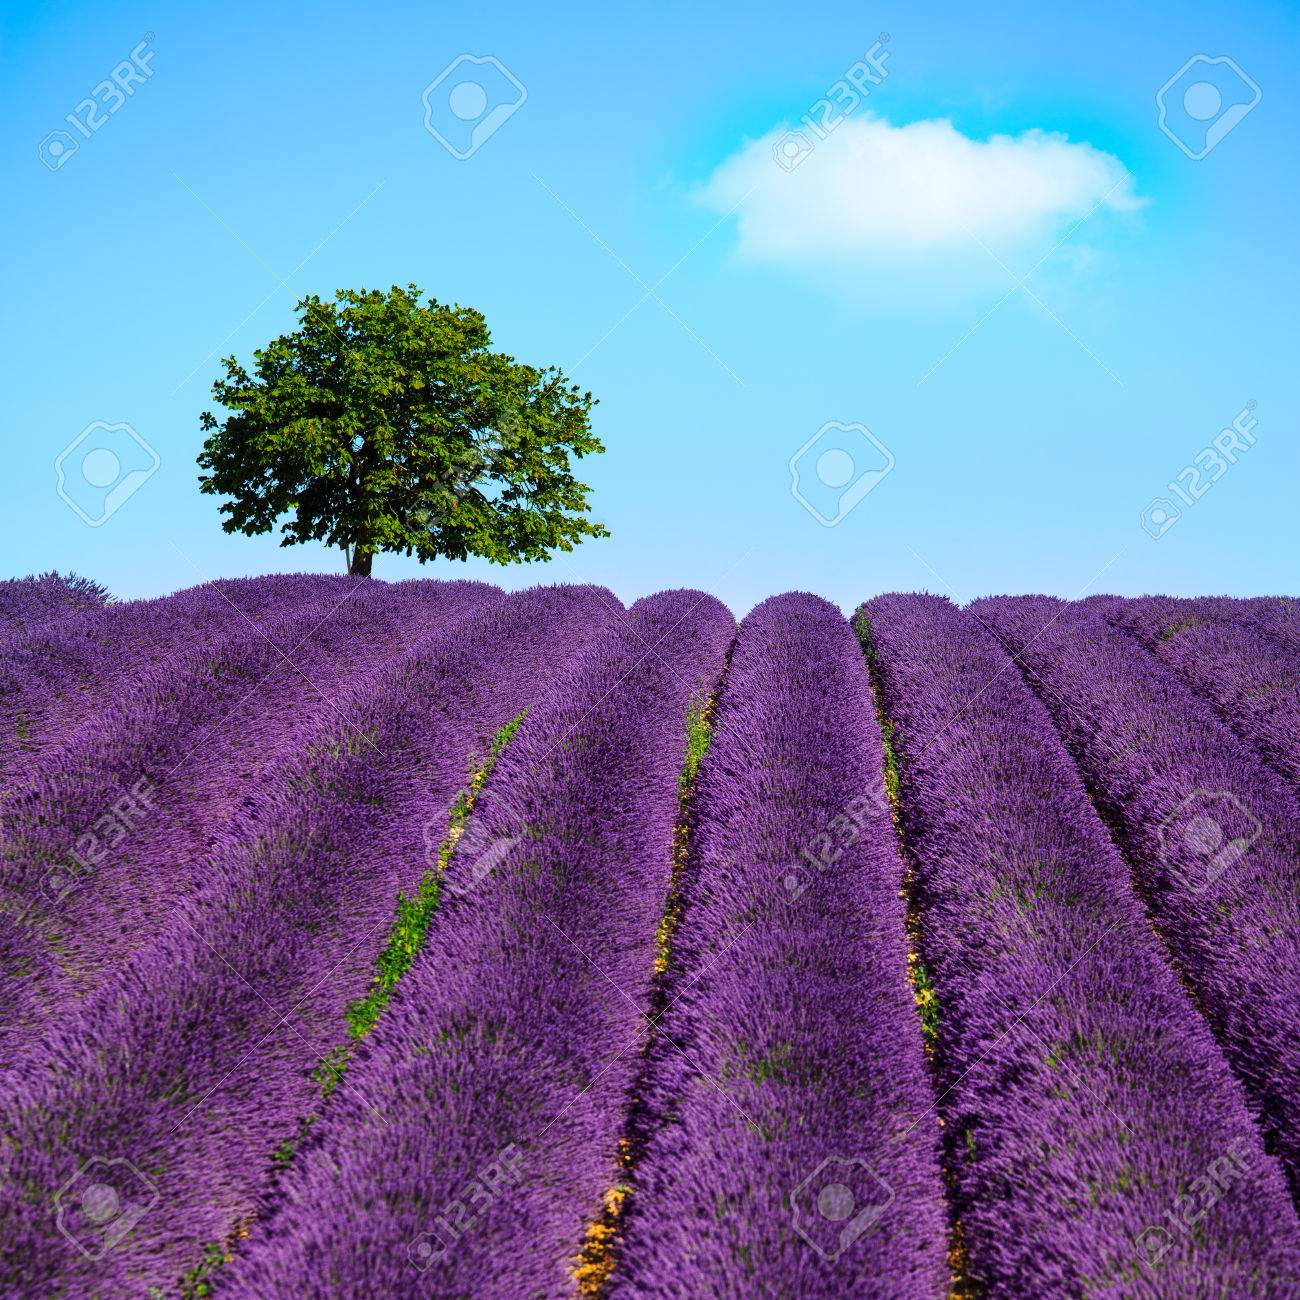 Lavender Flowers Blooming Field And A Lonely Tree Uphill